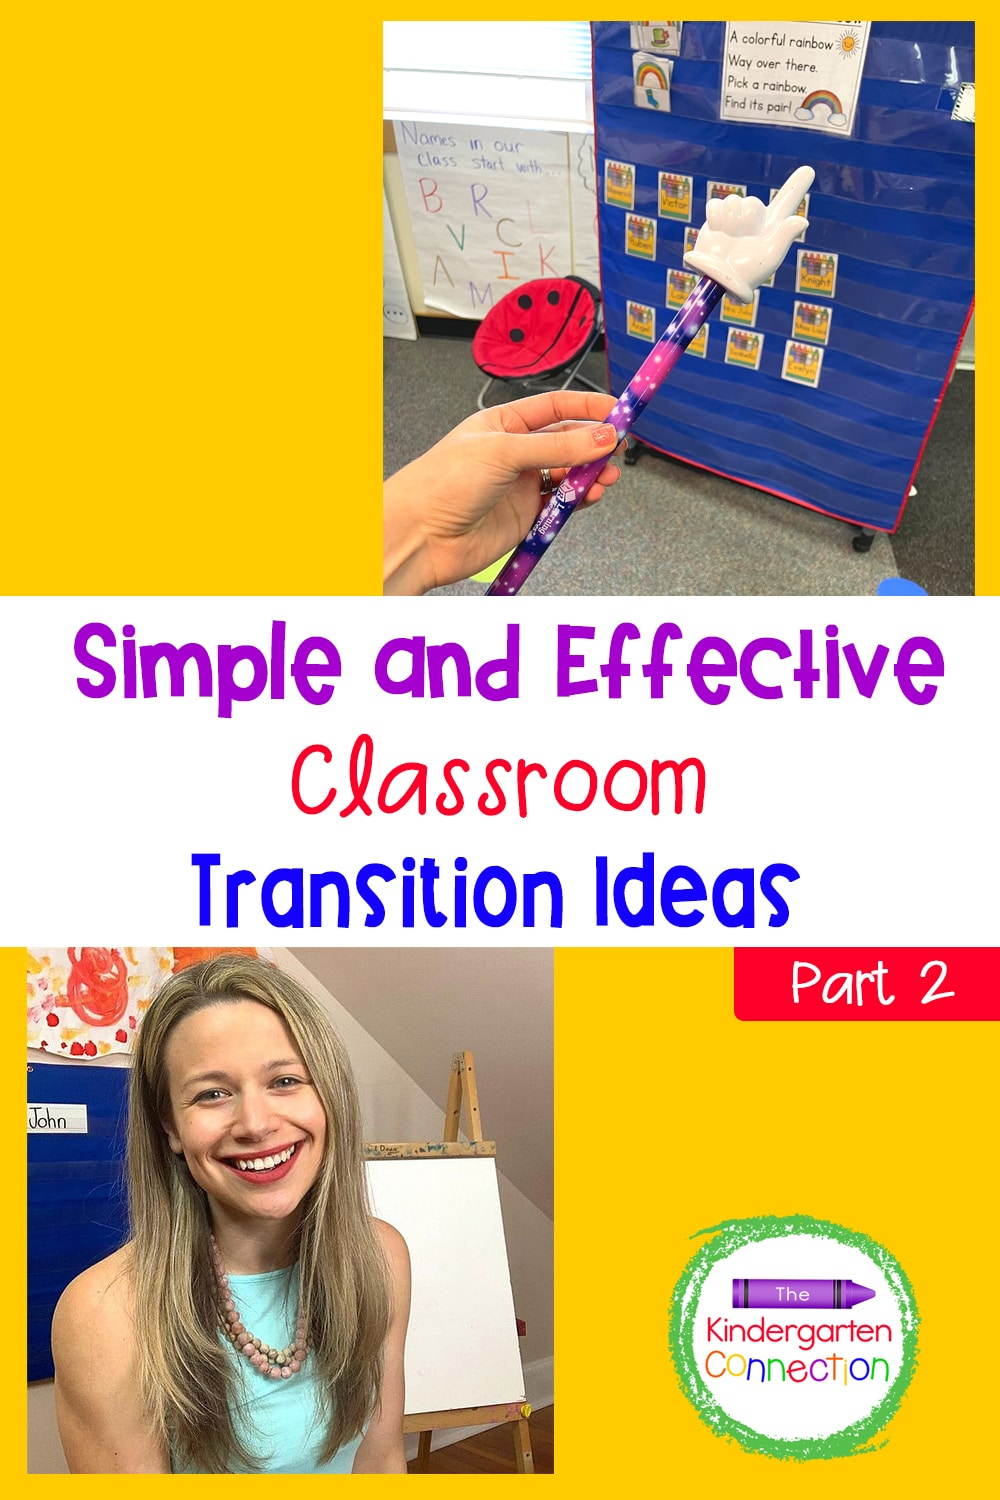 Stress less and accomplish more throughout the day with these simple and effective classroom transition ideas!